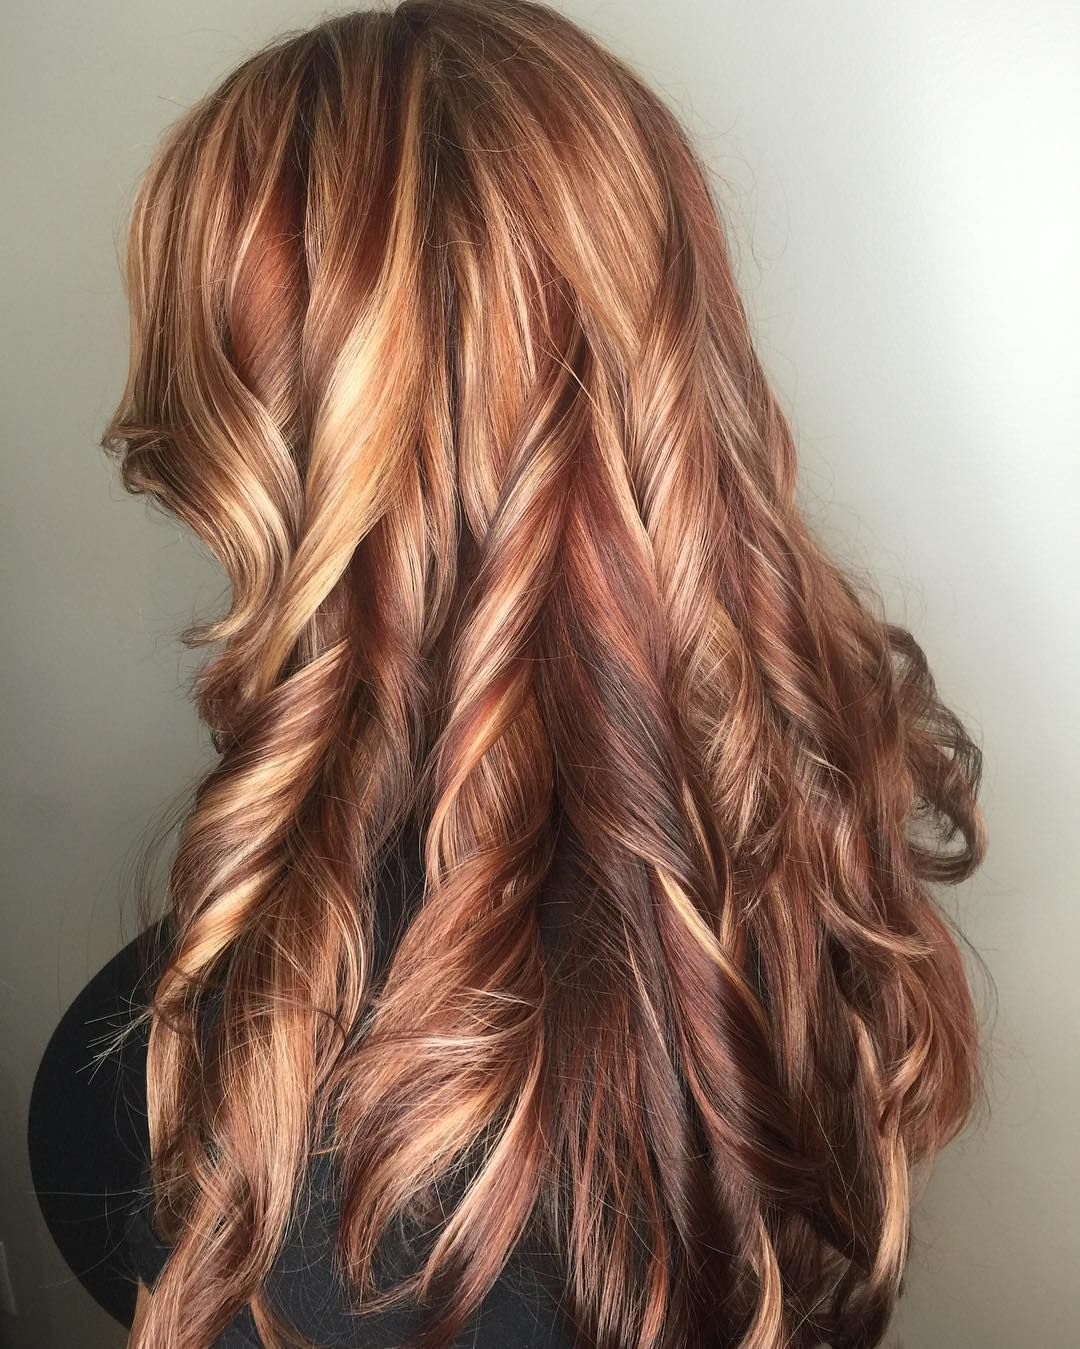 Autumn With Images Hair Color Caramel Red Blonde Hair Hair